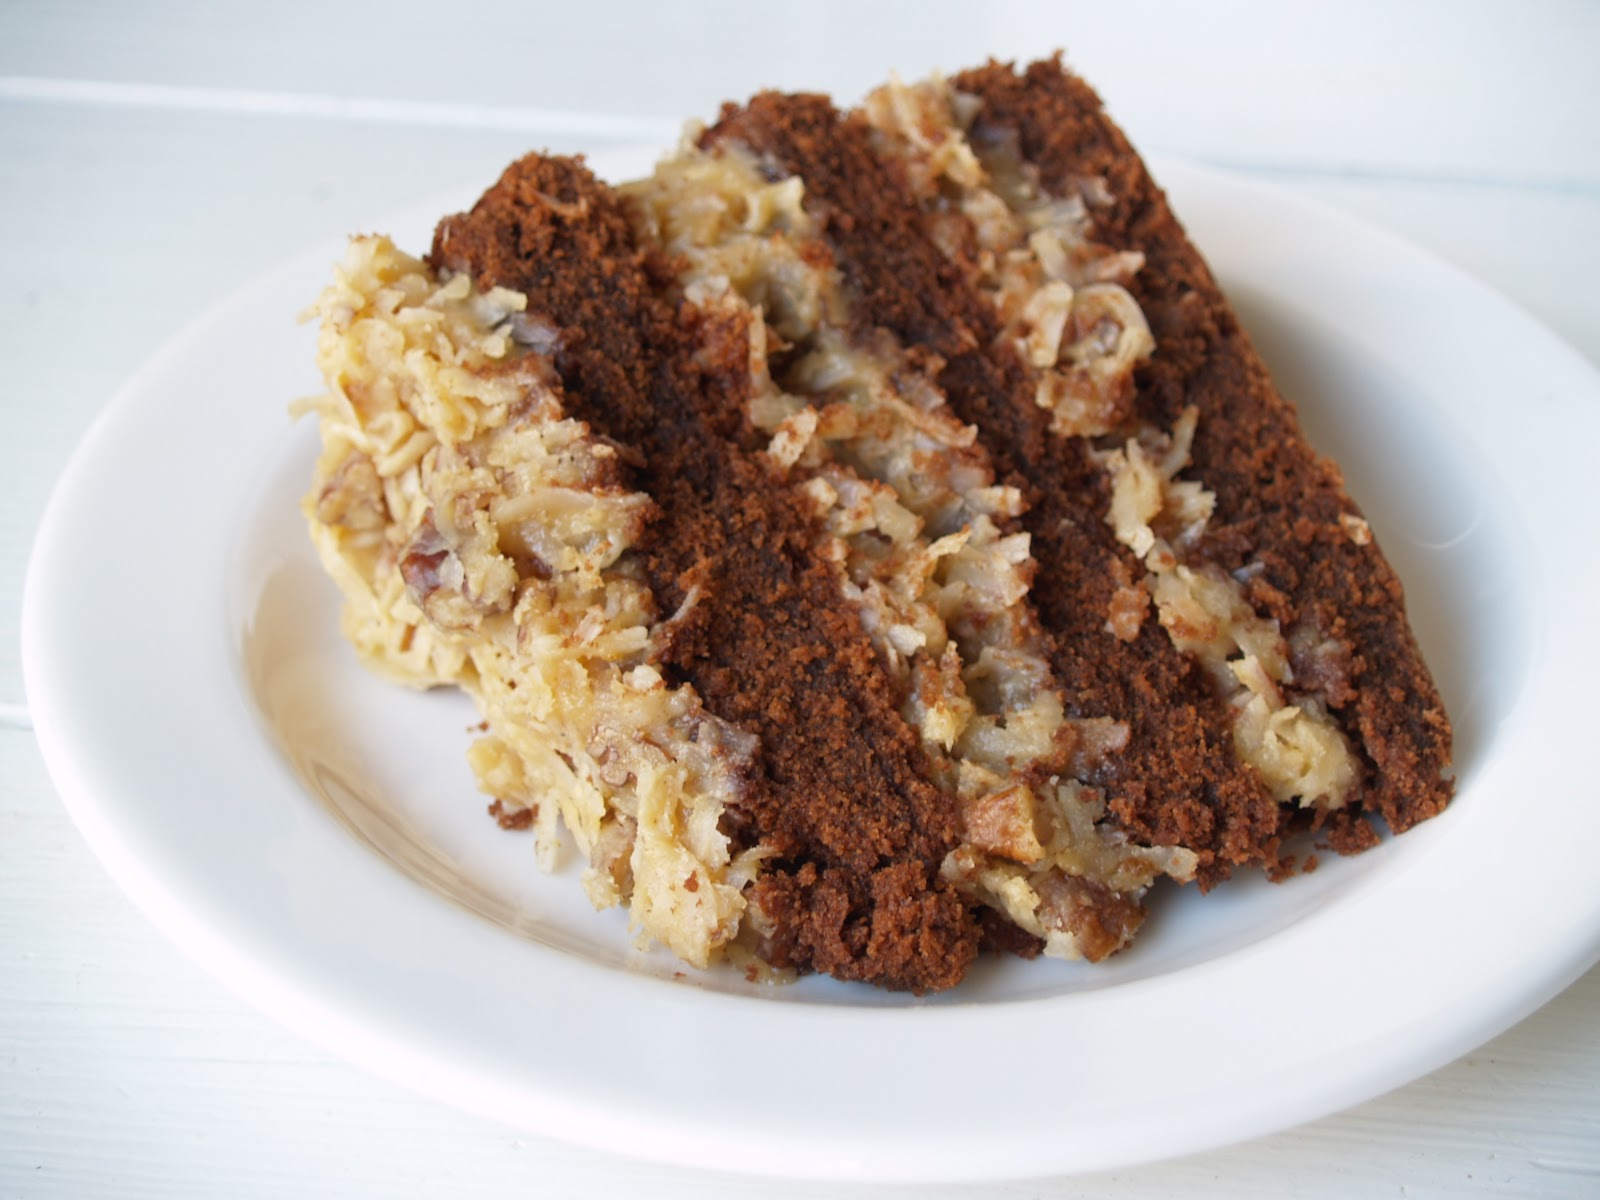 Persimmon and Peach: German Chocolate Cake